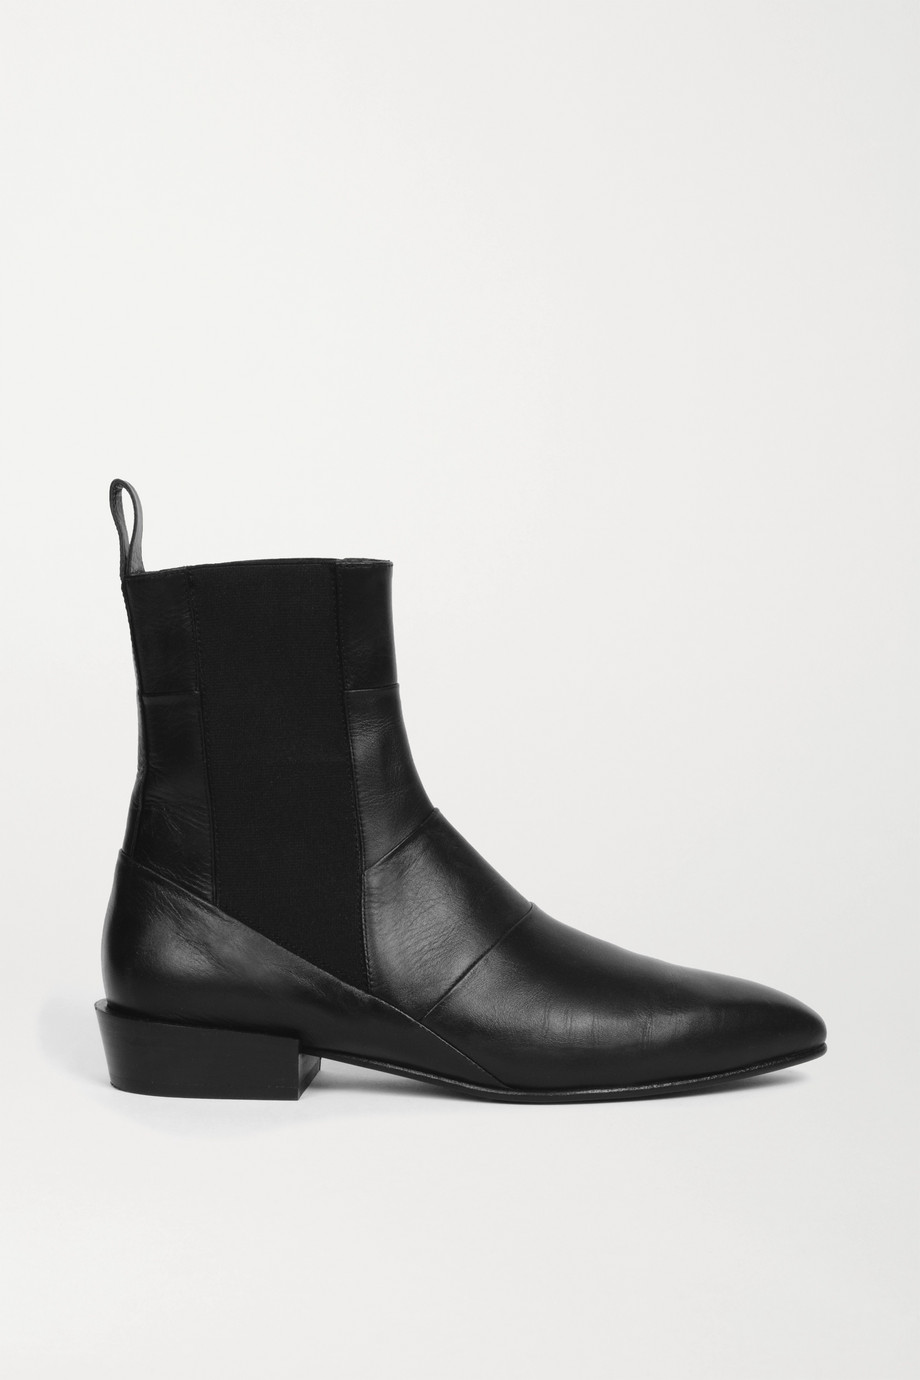 3.1 Phillip Lim Dree leather Chelsea boots